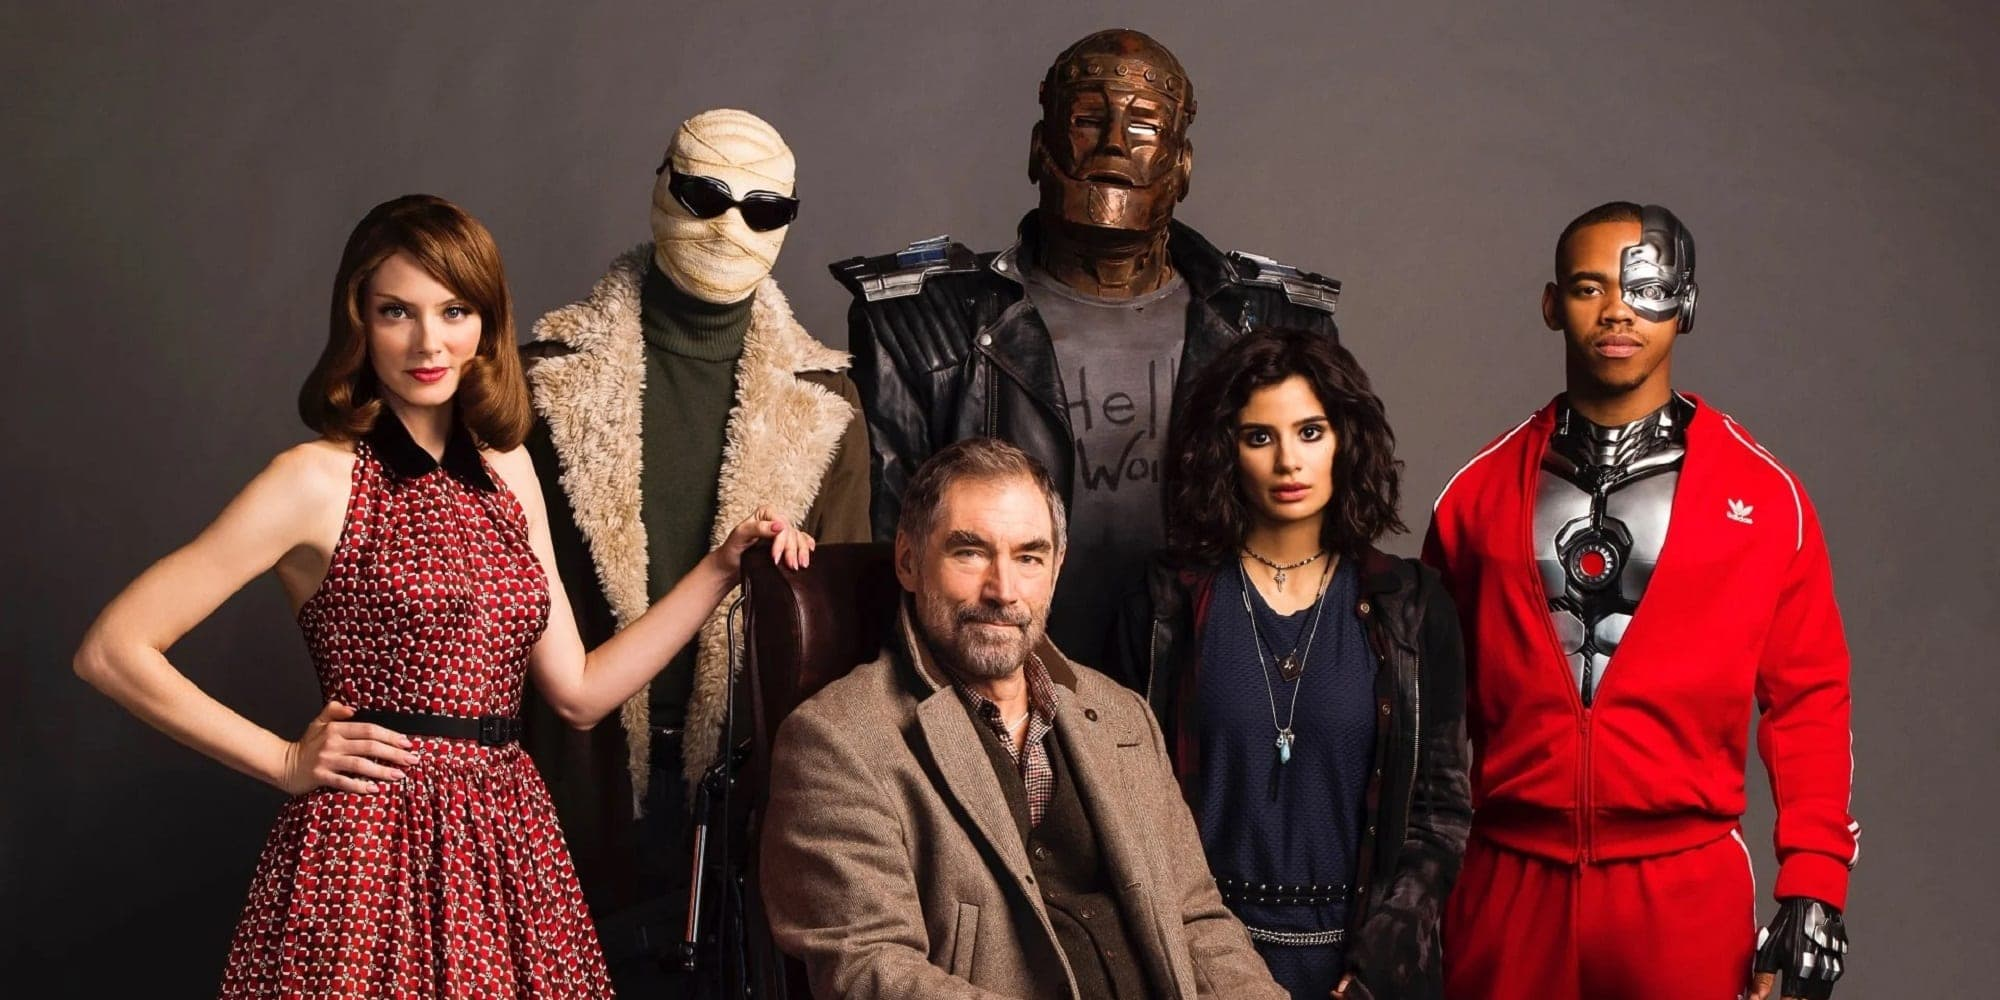 Doom Patrol Season 2 trailer featured